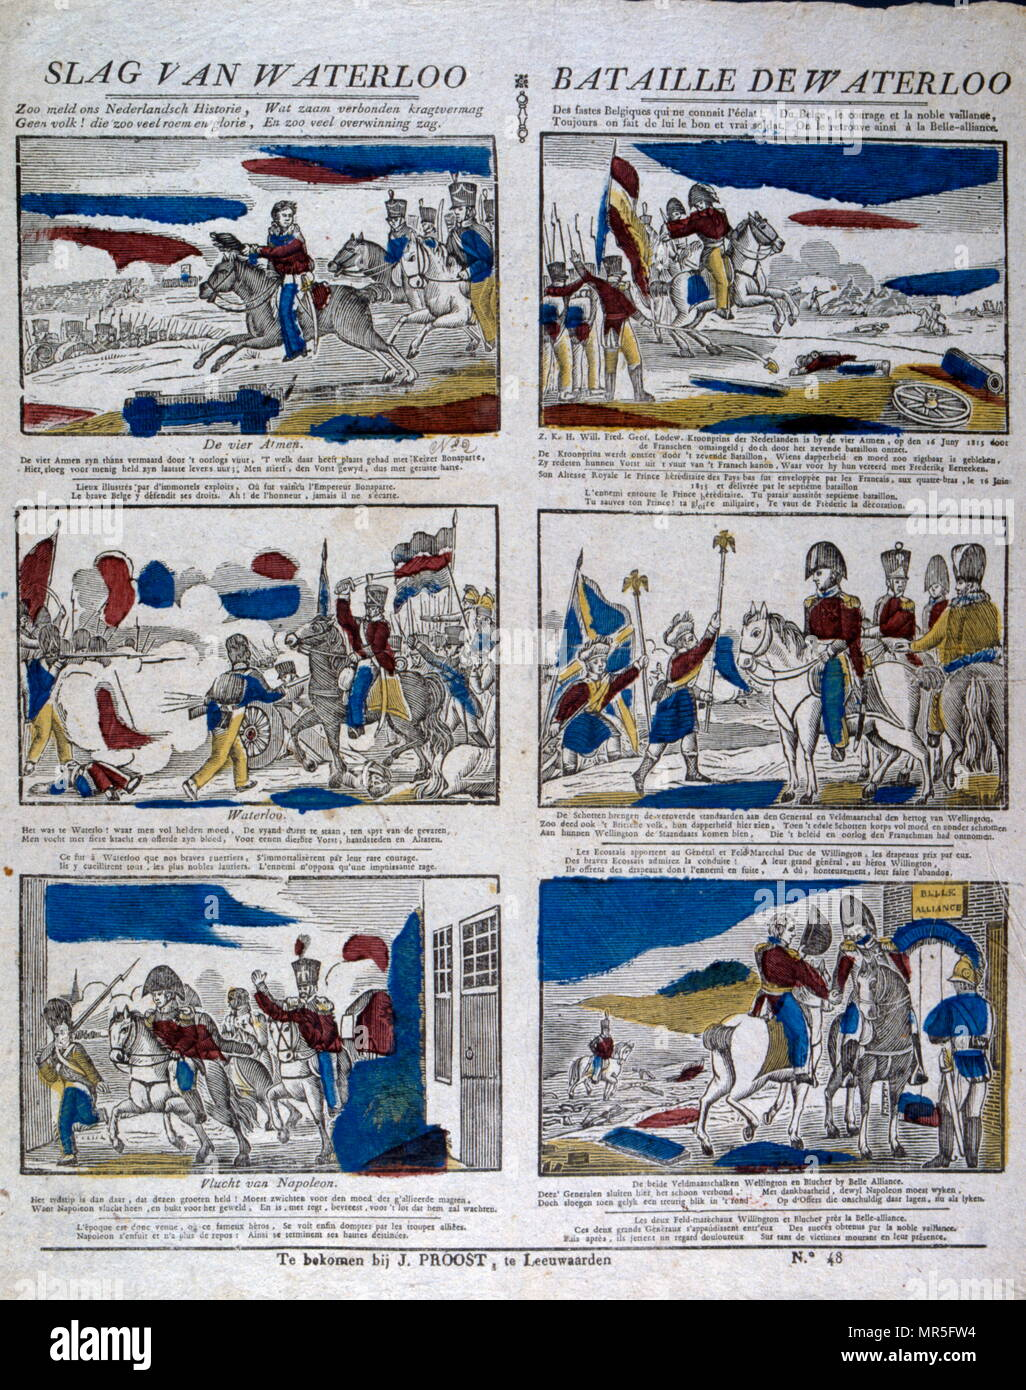 The Battle of Waterloo 1815. Flemish and French language series of illustrations. - Stock Image